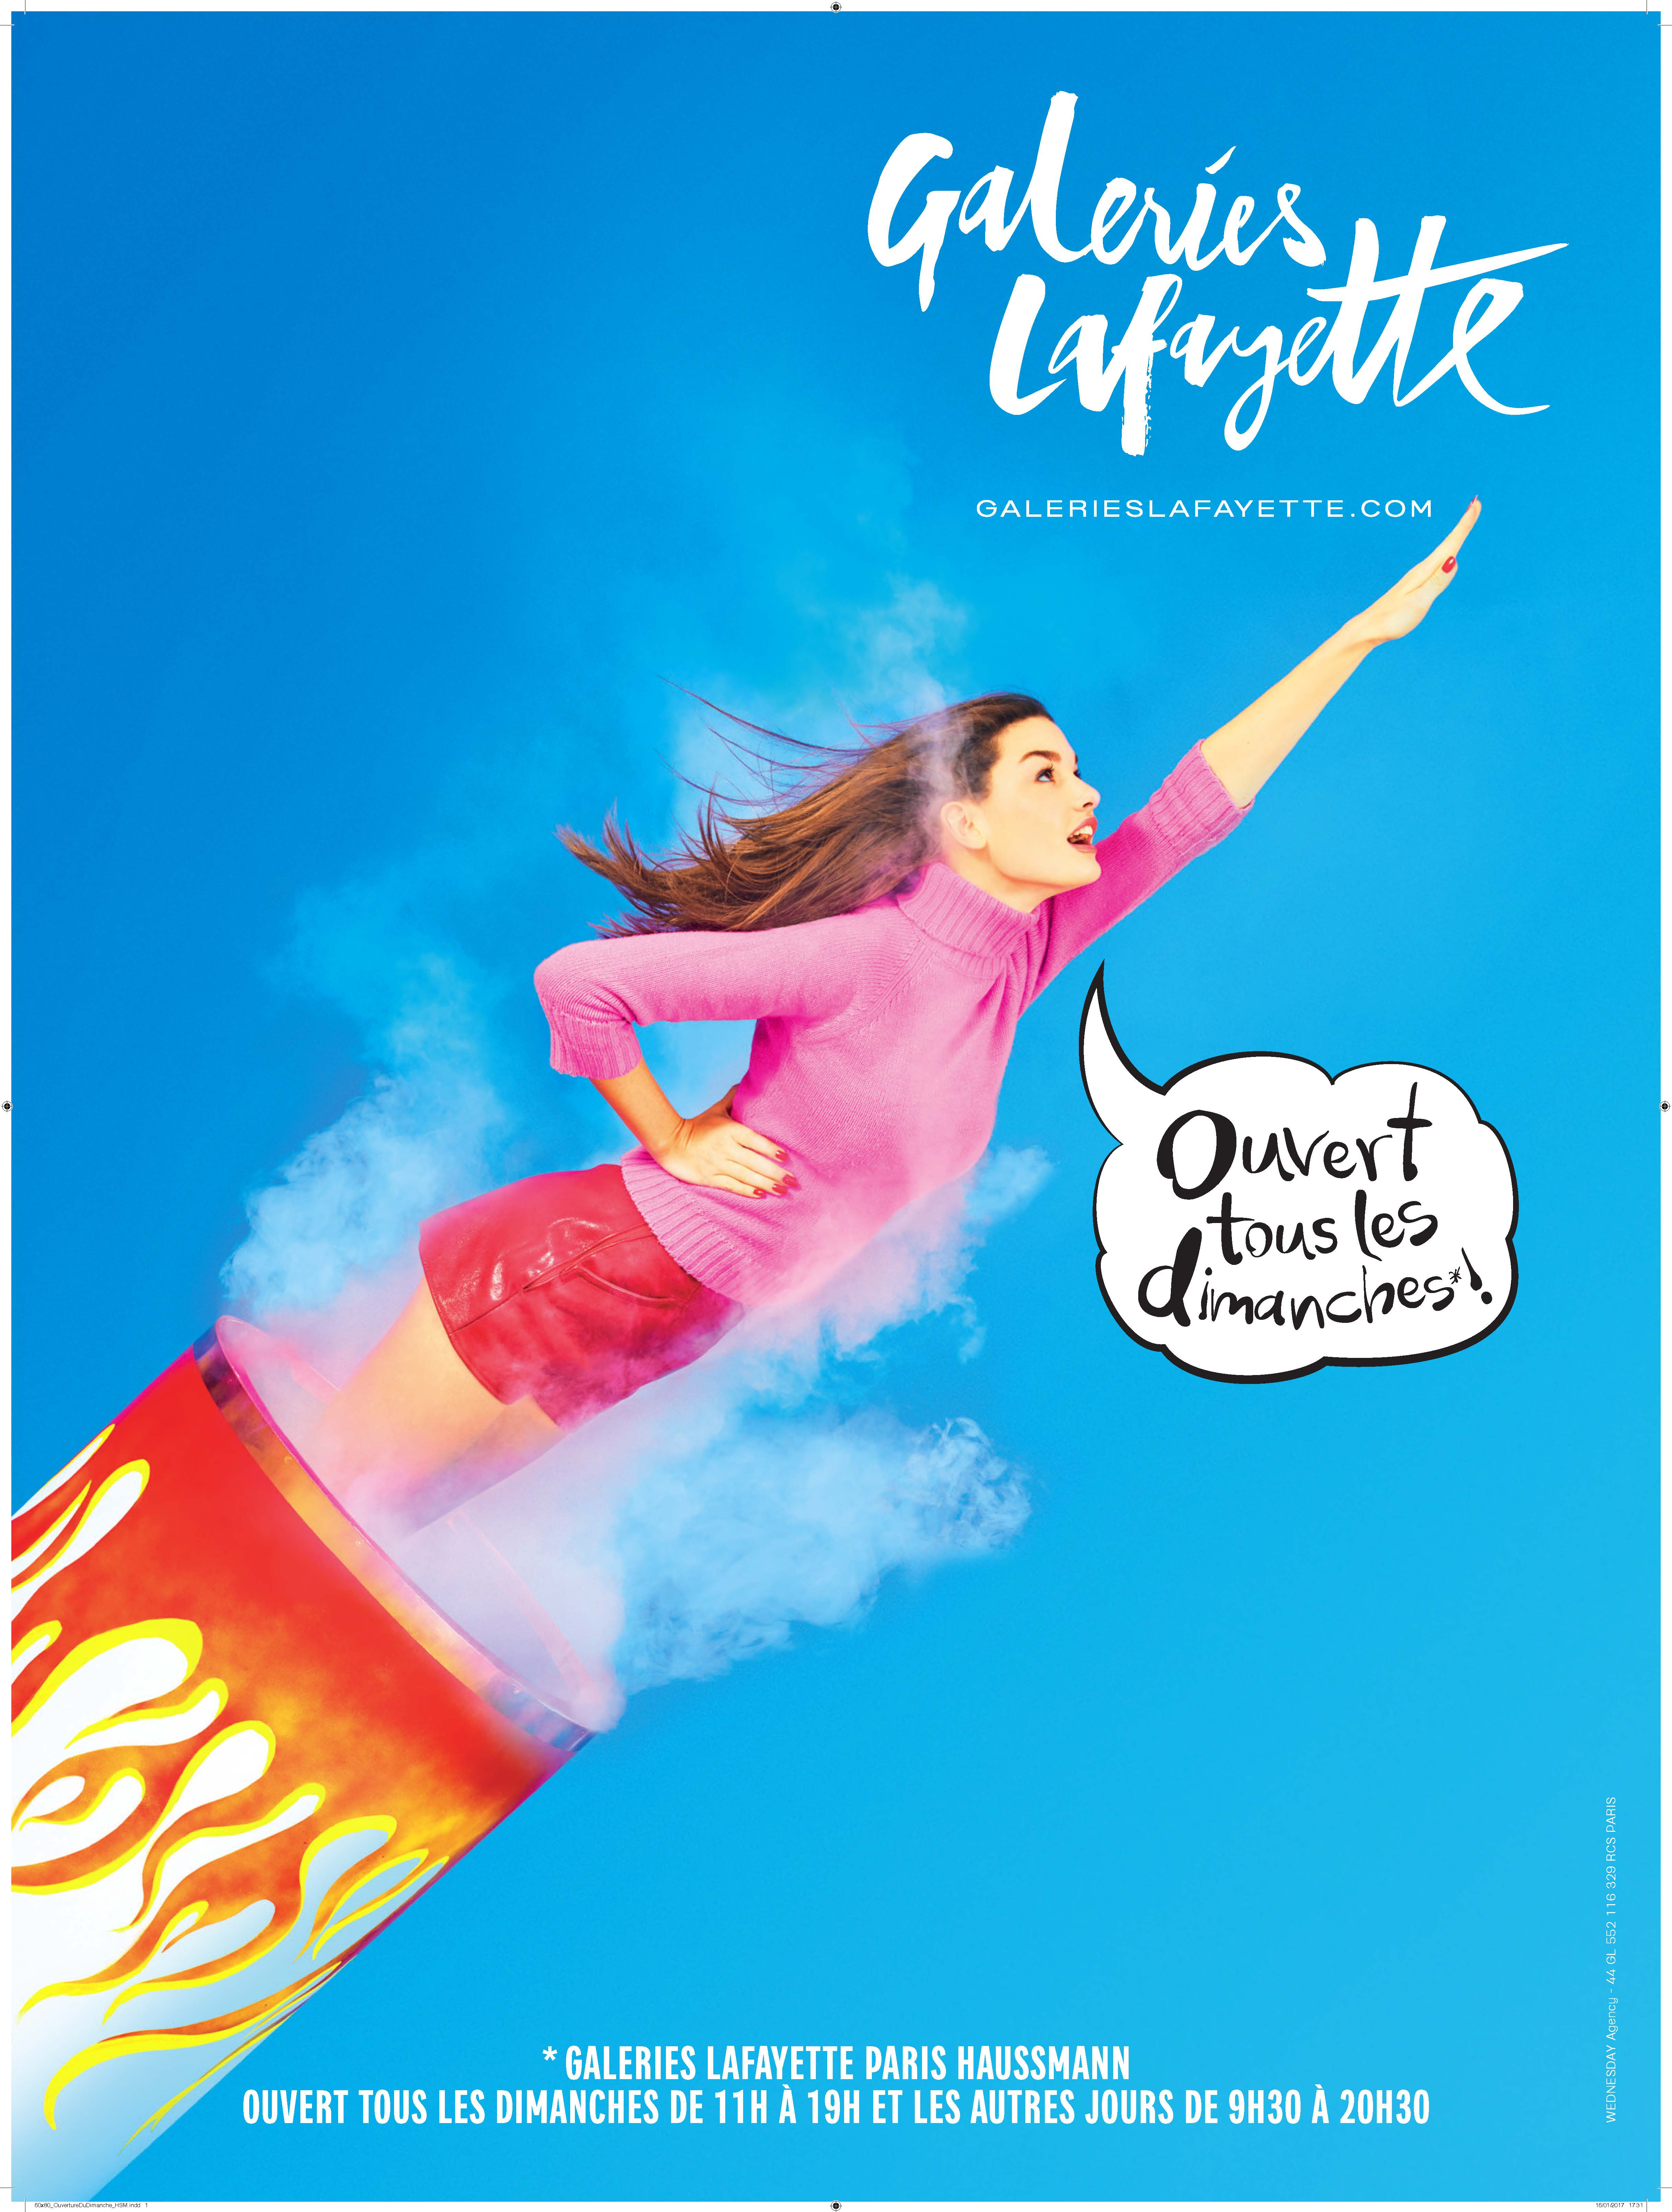 An ad by Toilet Paper for Galeries Lafayette.